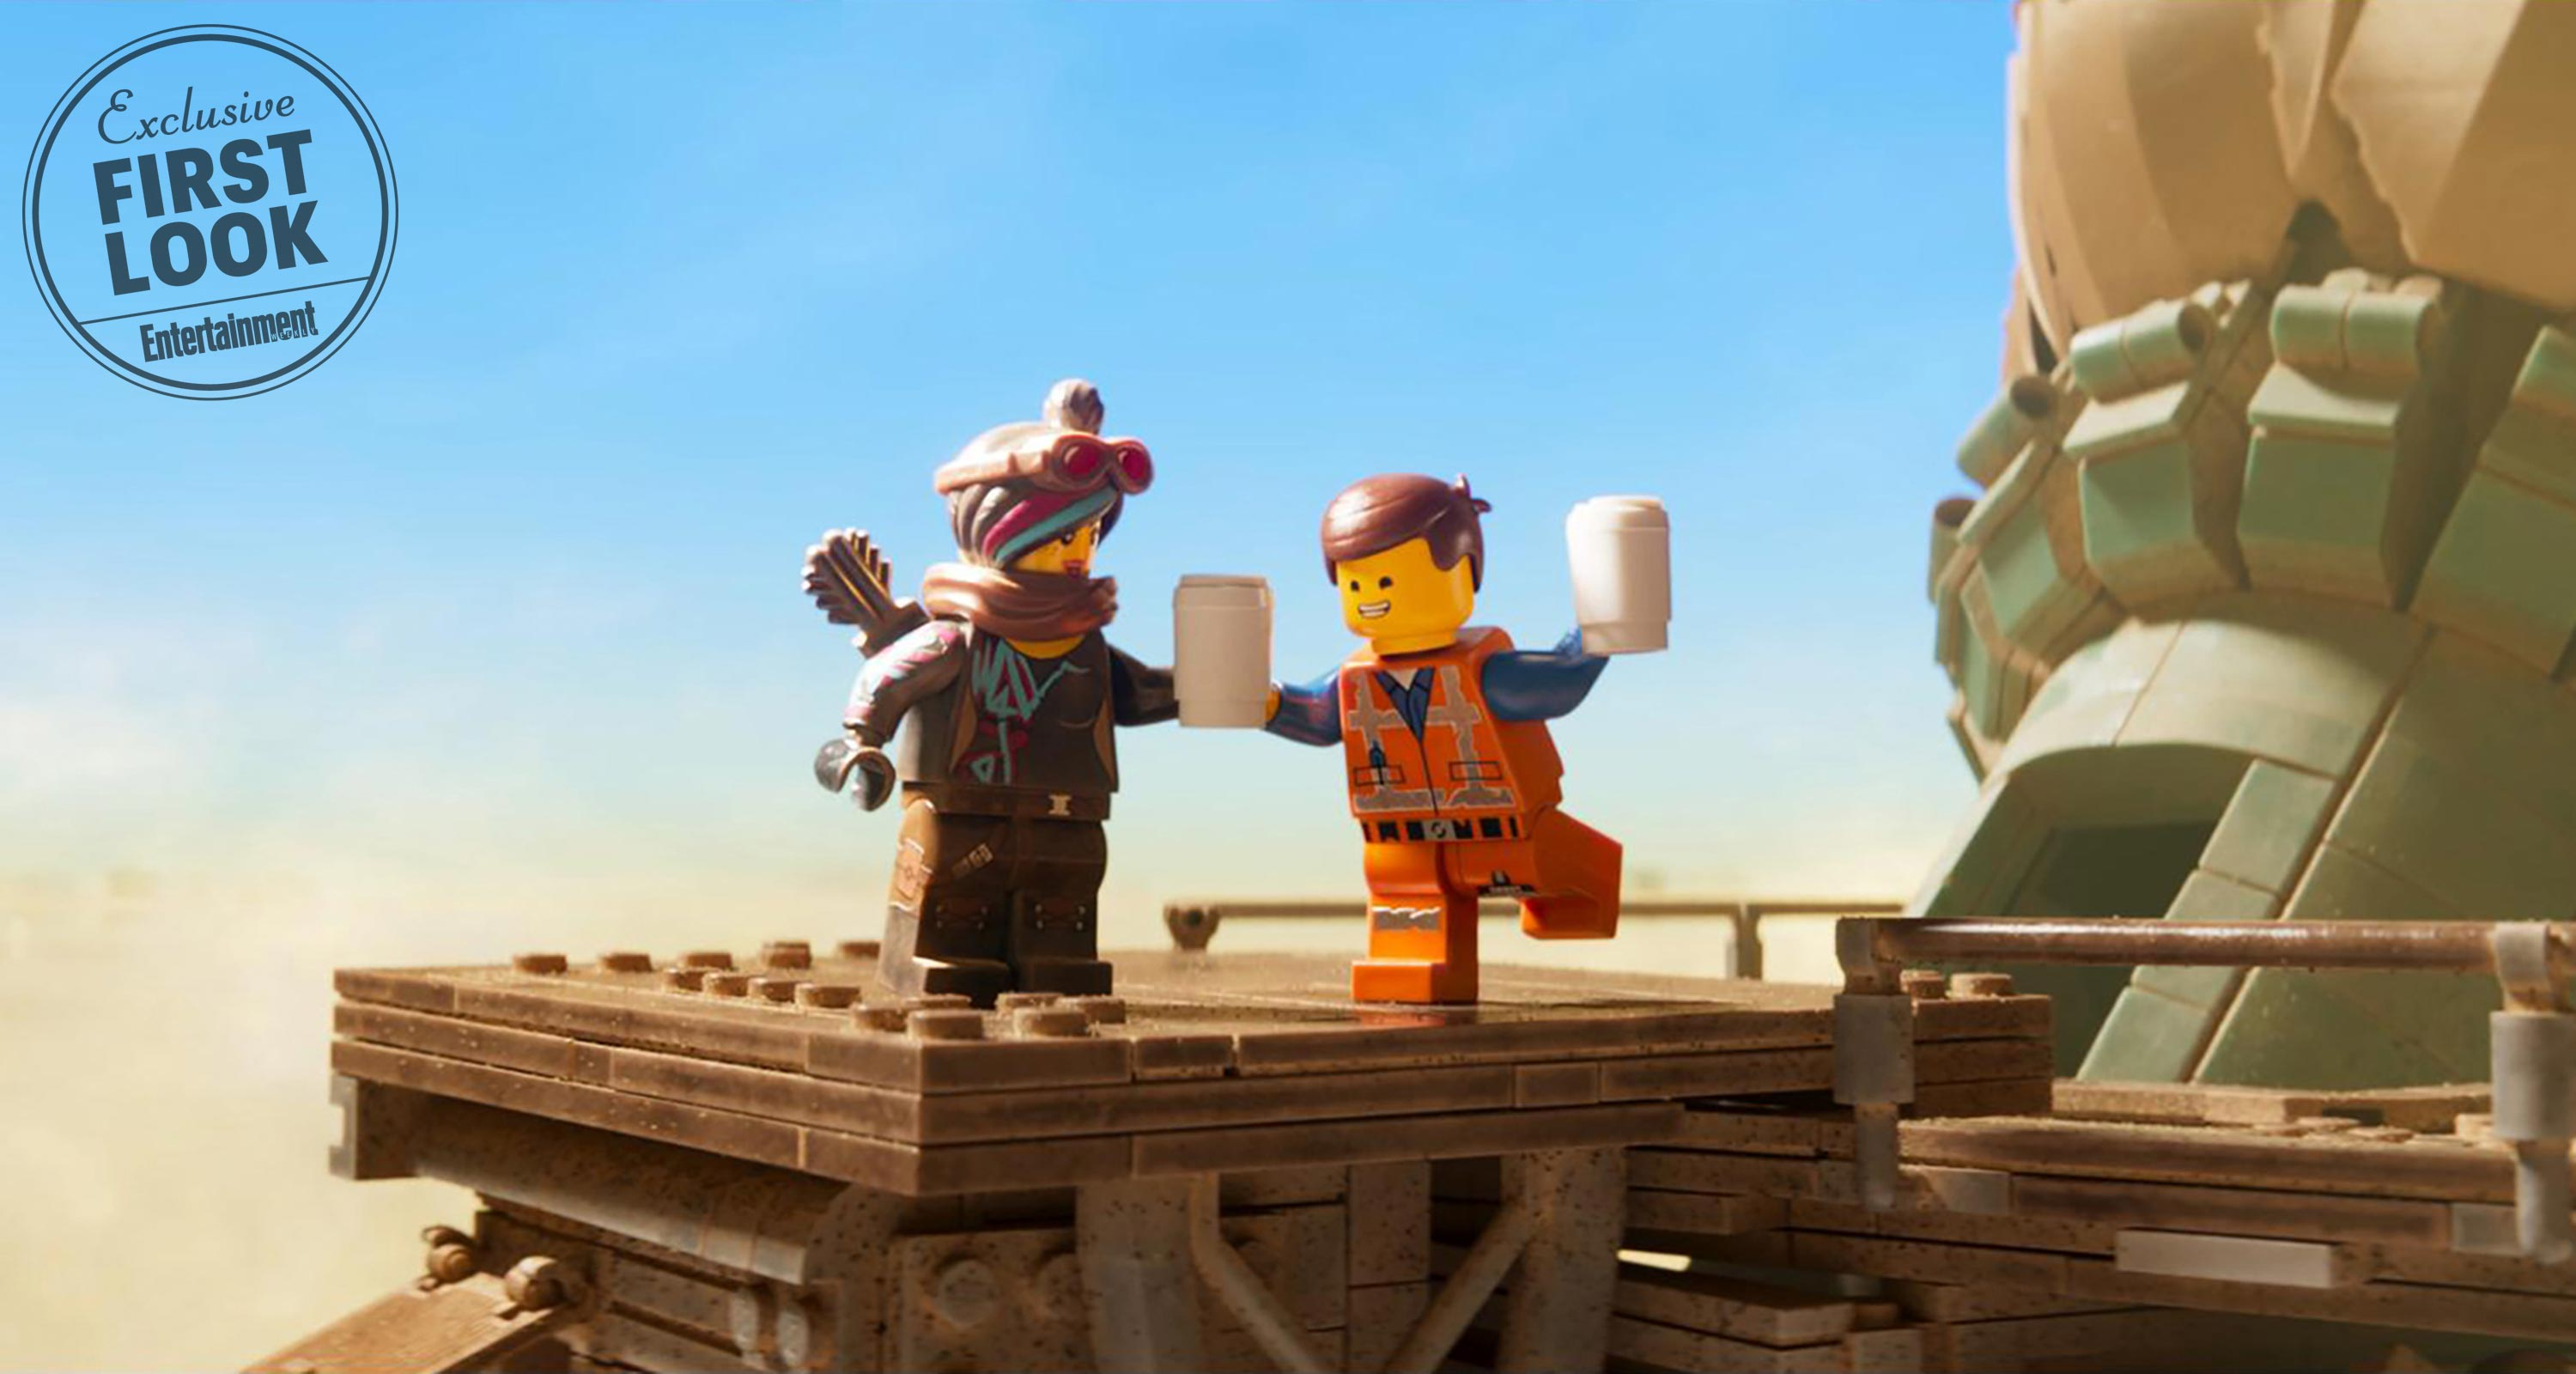 The Lego Batman Movie is a 2017 computeranimated superhero comedy film produced by Warner Animation Group It was directed by Chris McKay and written by Seth